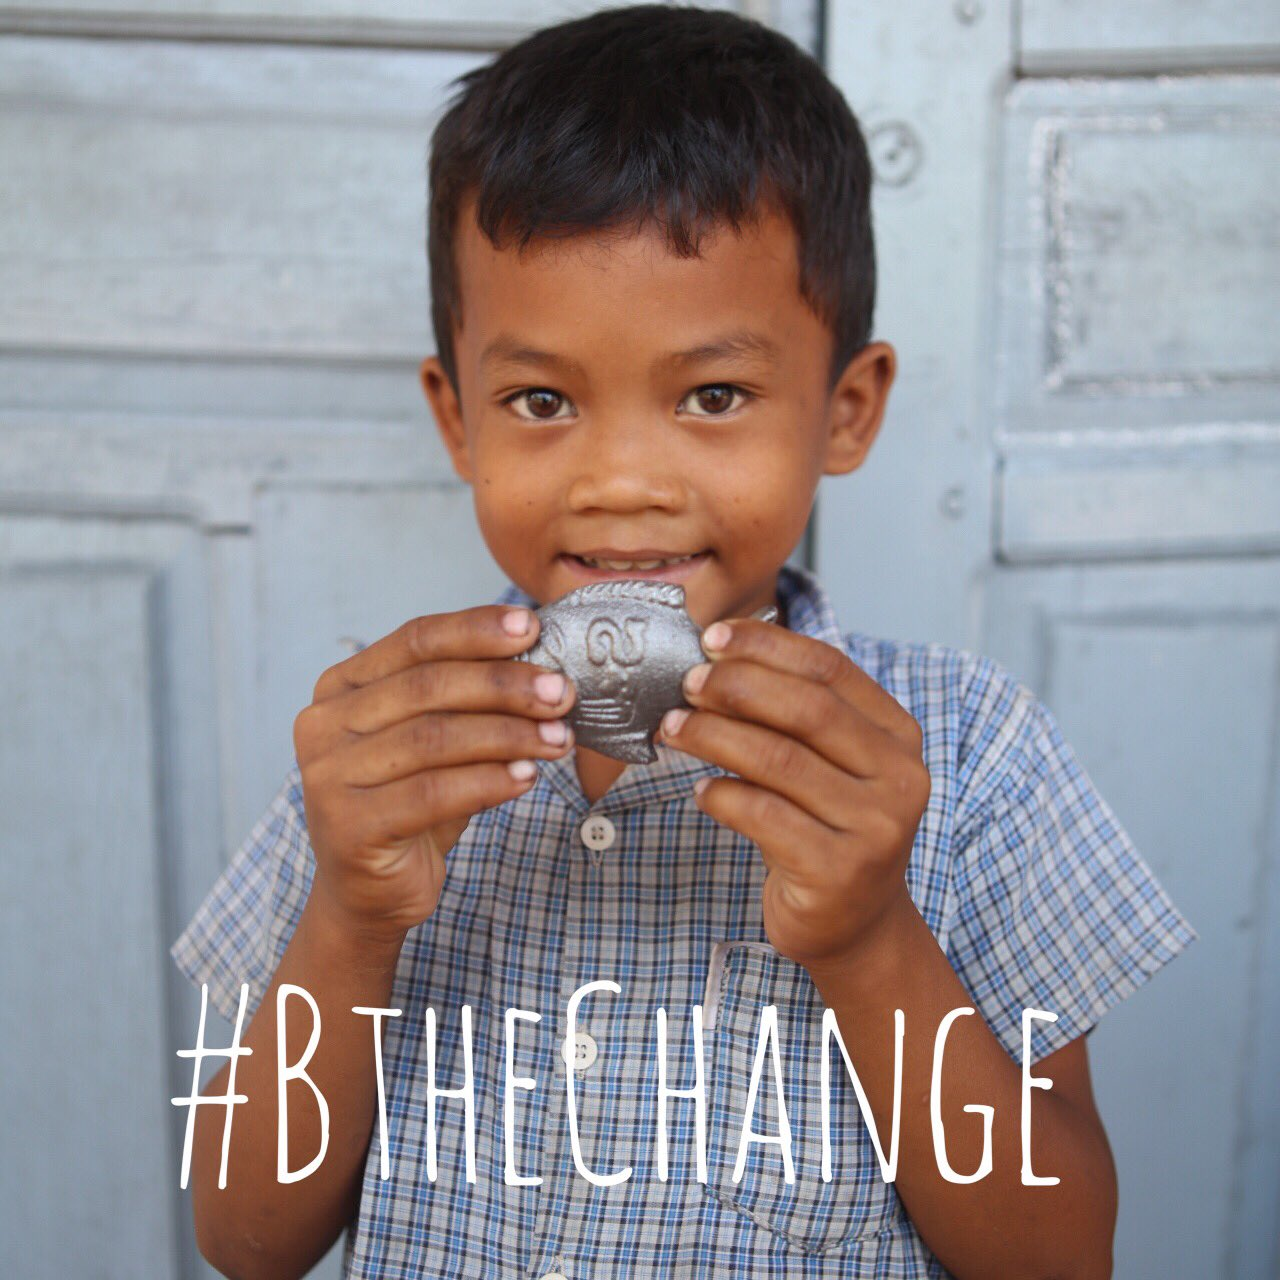 We are a registered @BCorpCanada , top 10% best 4 the world! #BtheChange #SocialImpact https://t.co/3BbuVwBJBO